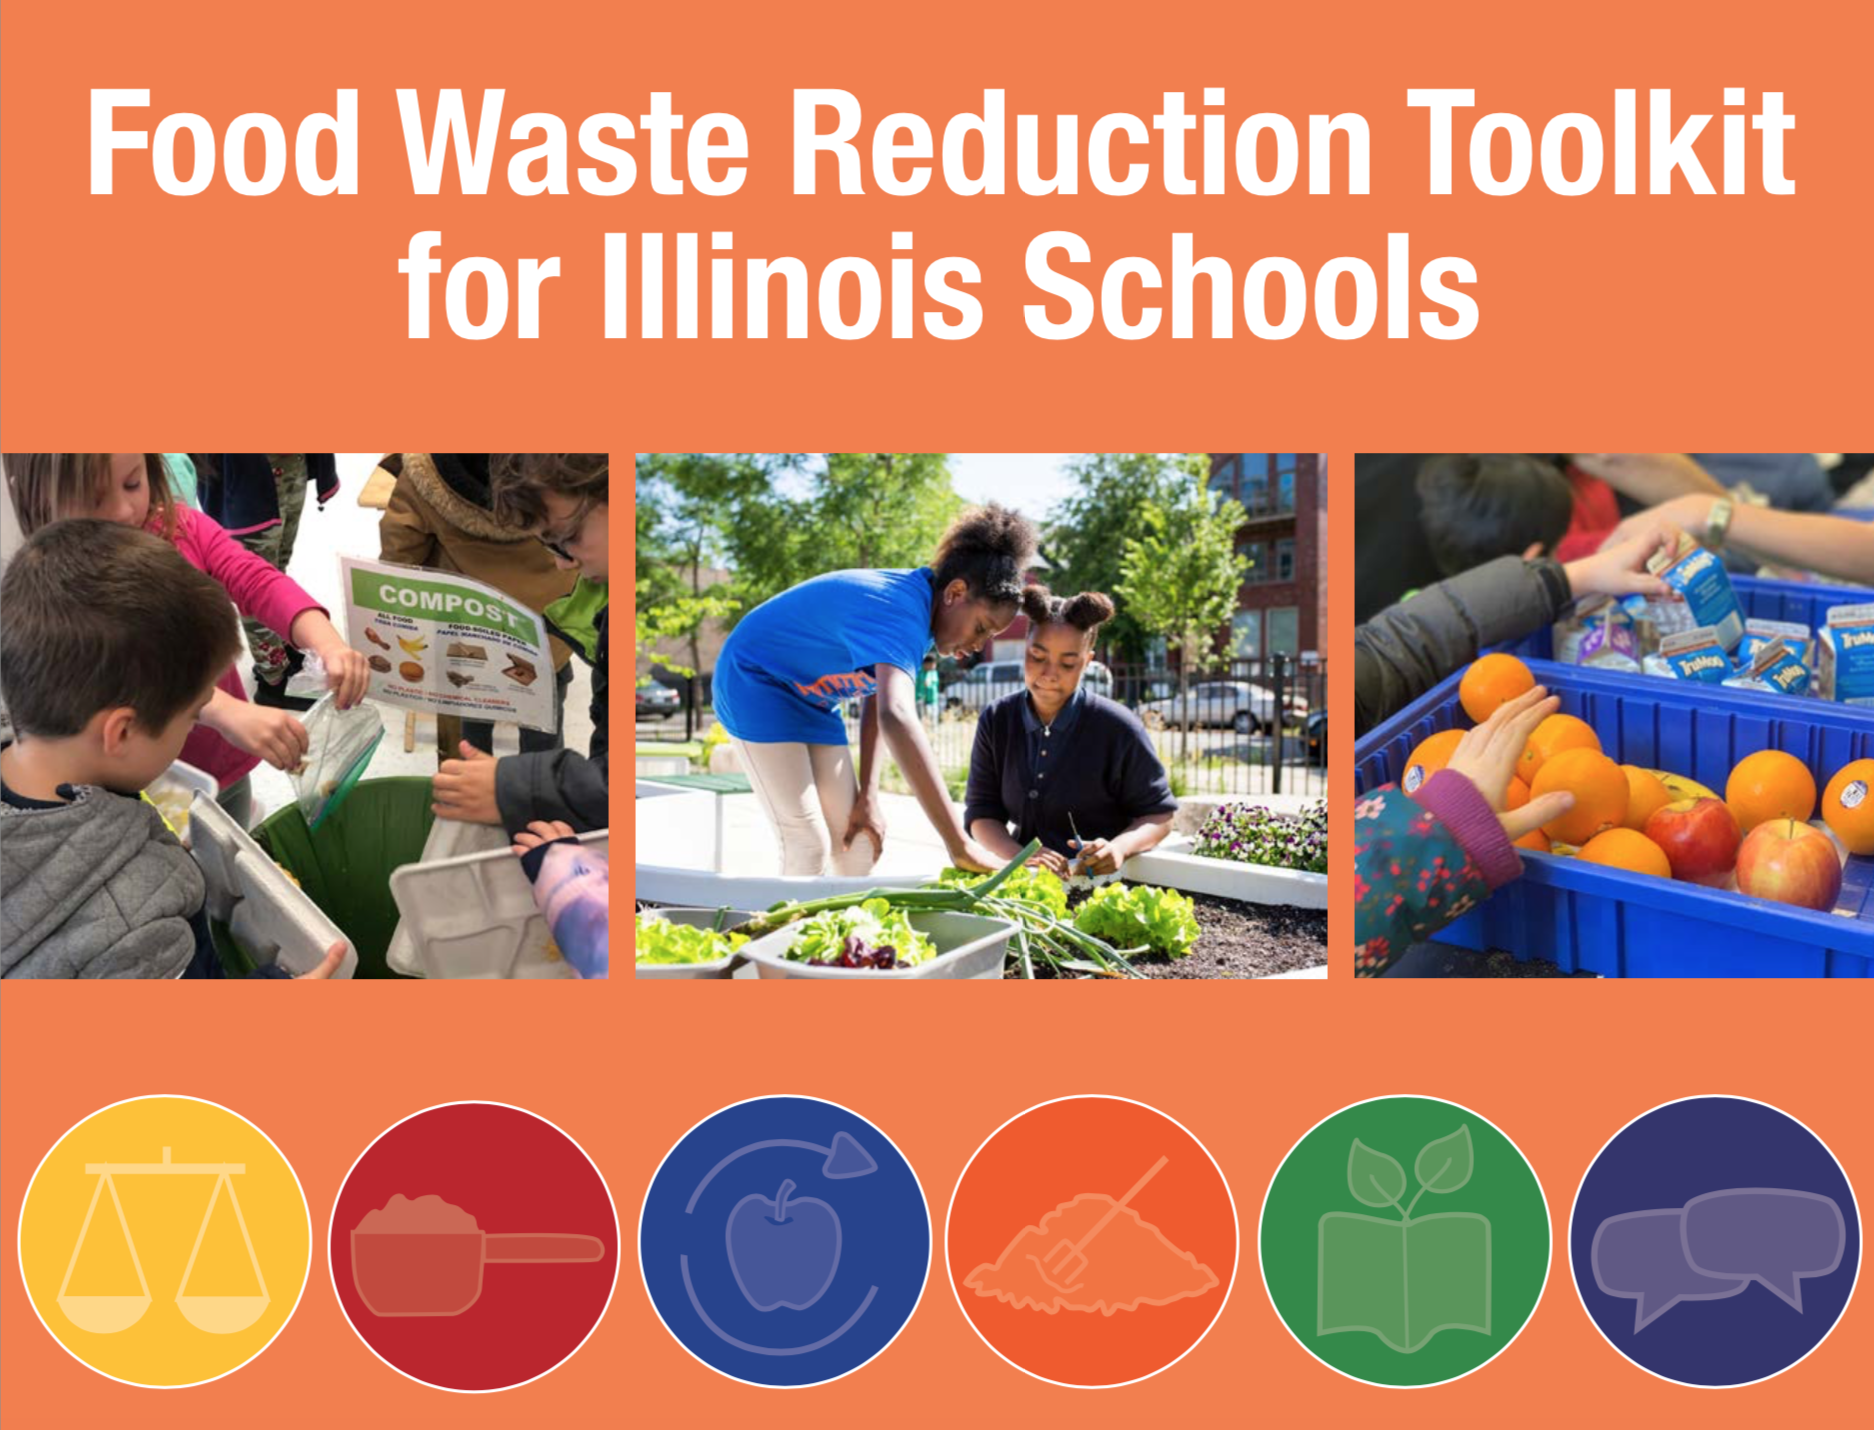 Food-waste-reduction-toolkit-cover-screen-shot